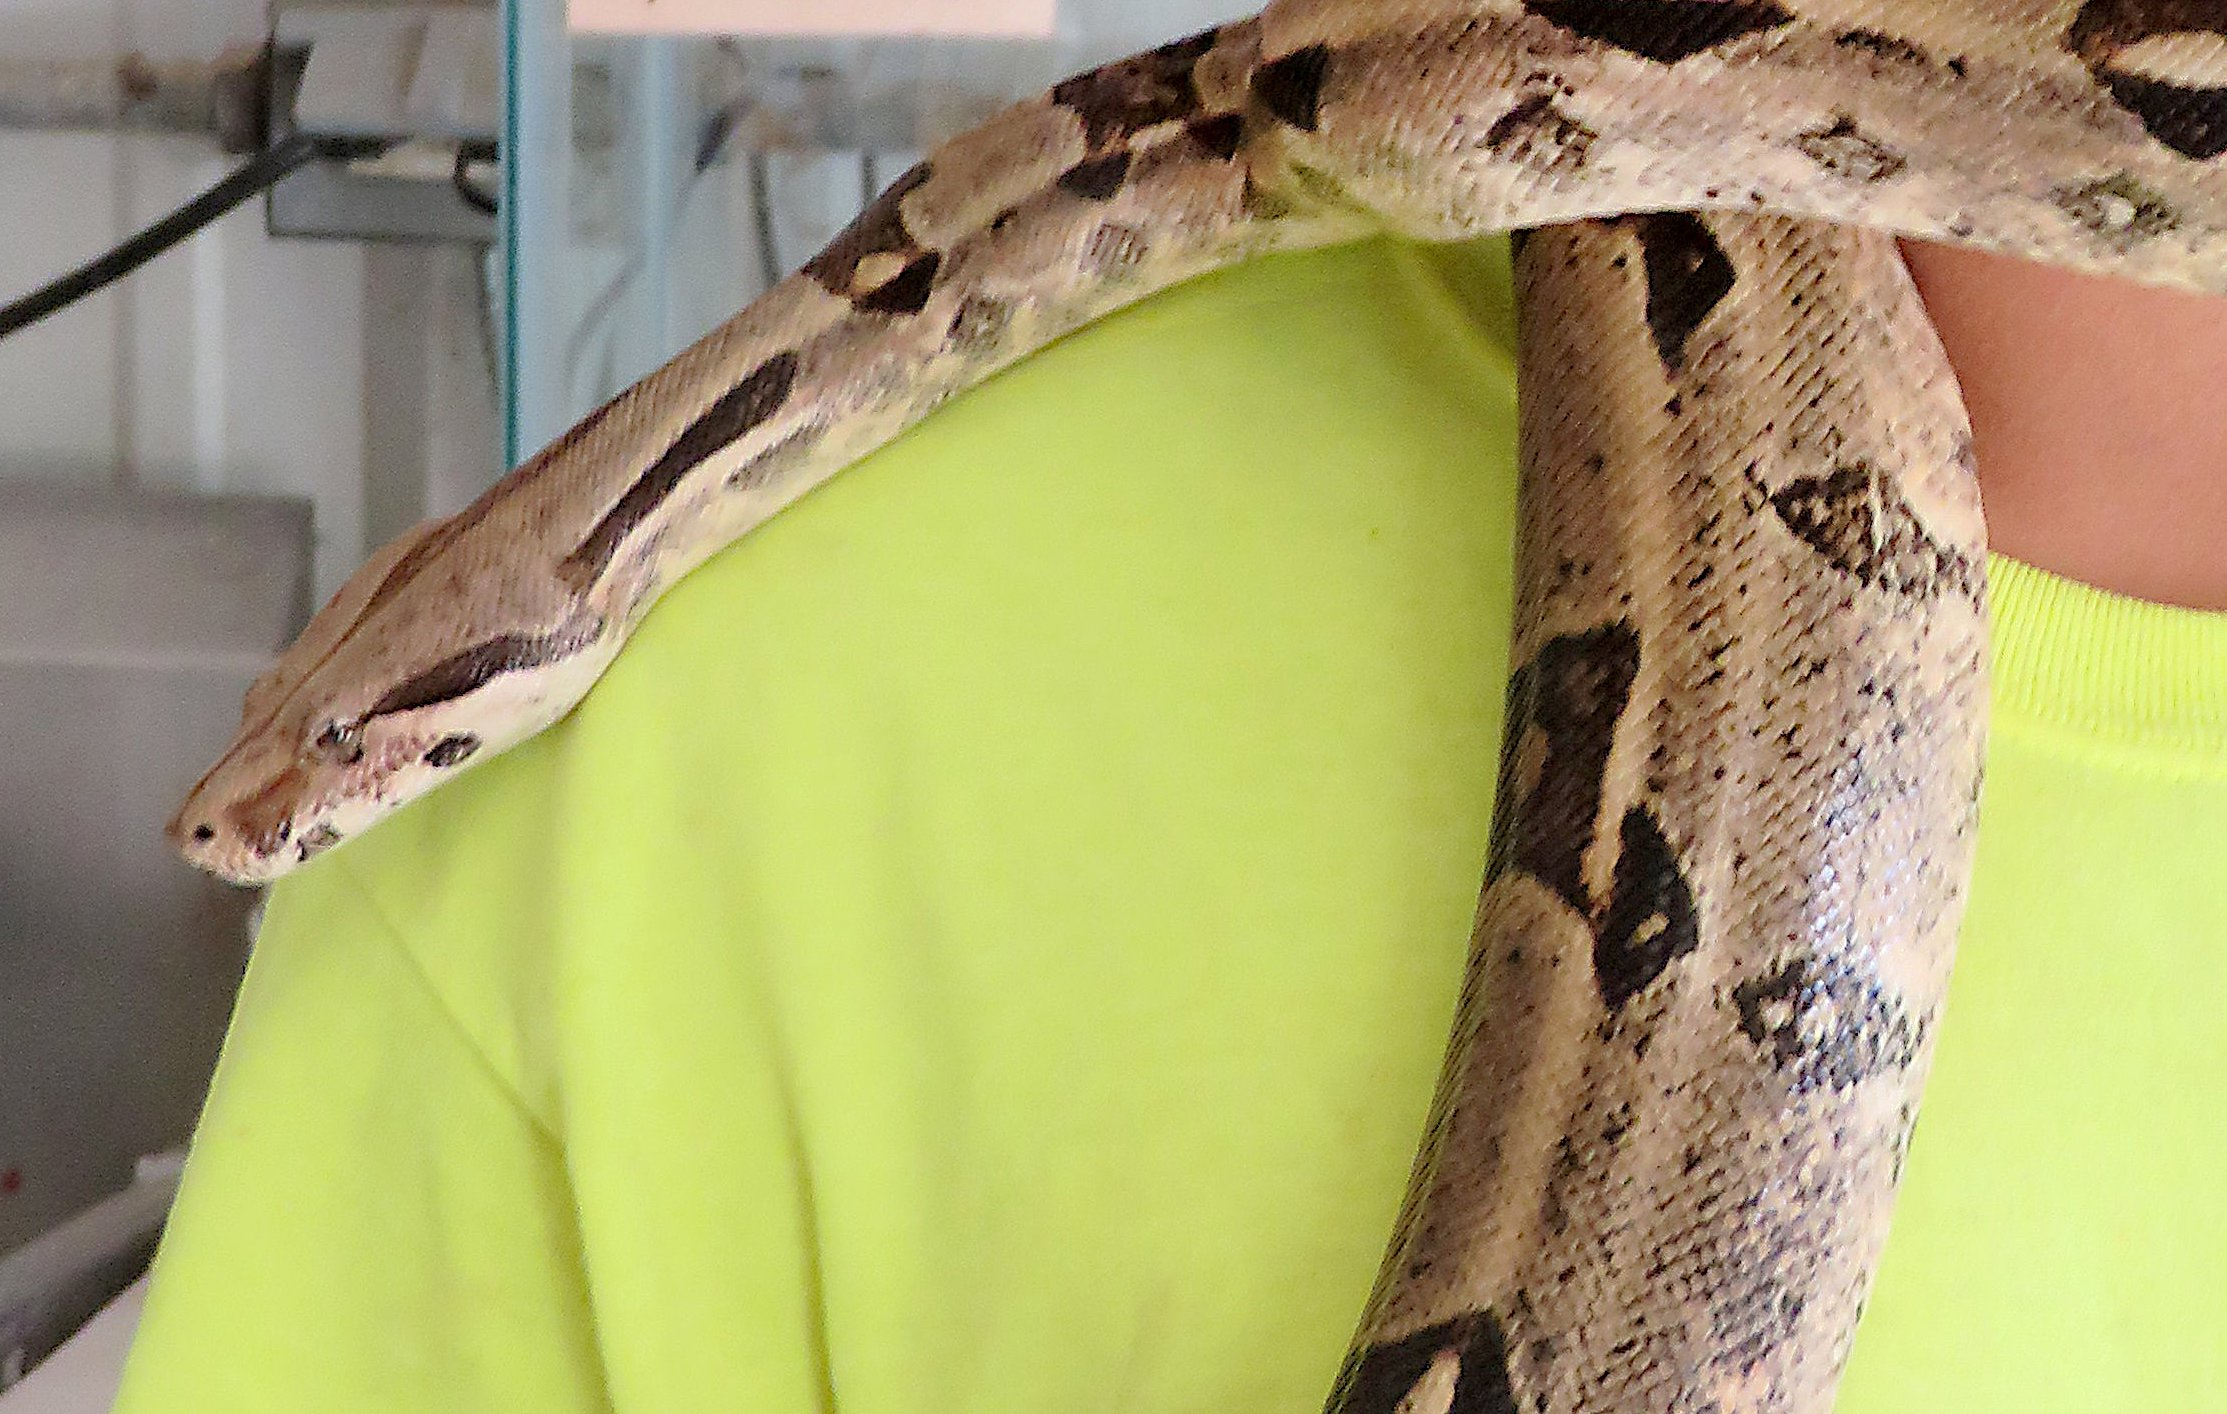 11-foot-long boa constrictor still on the loose; not a threat to children, officials say